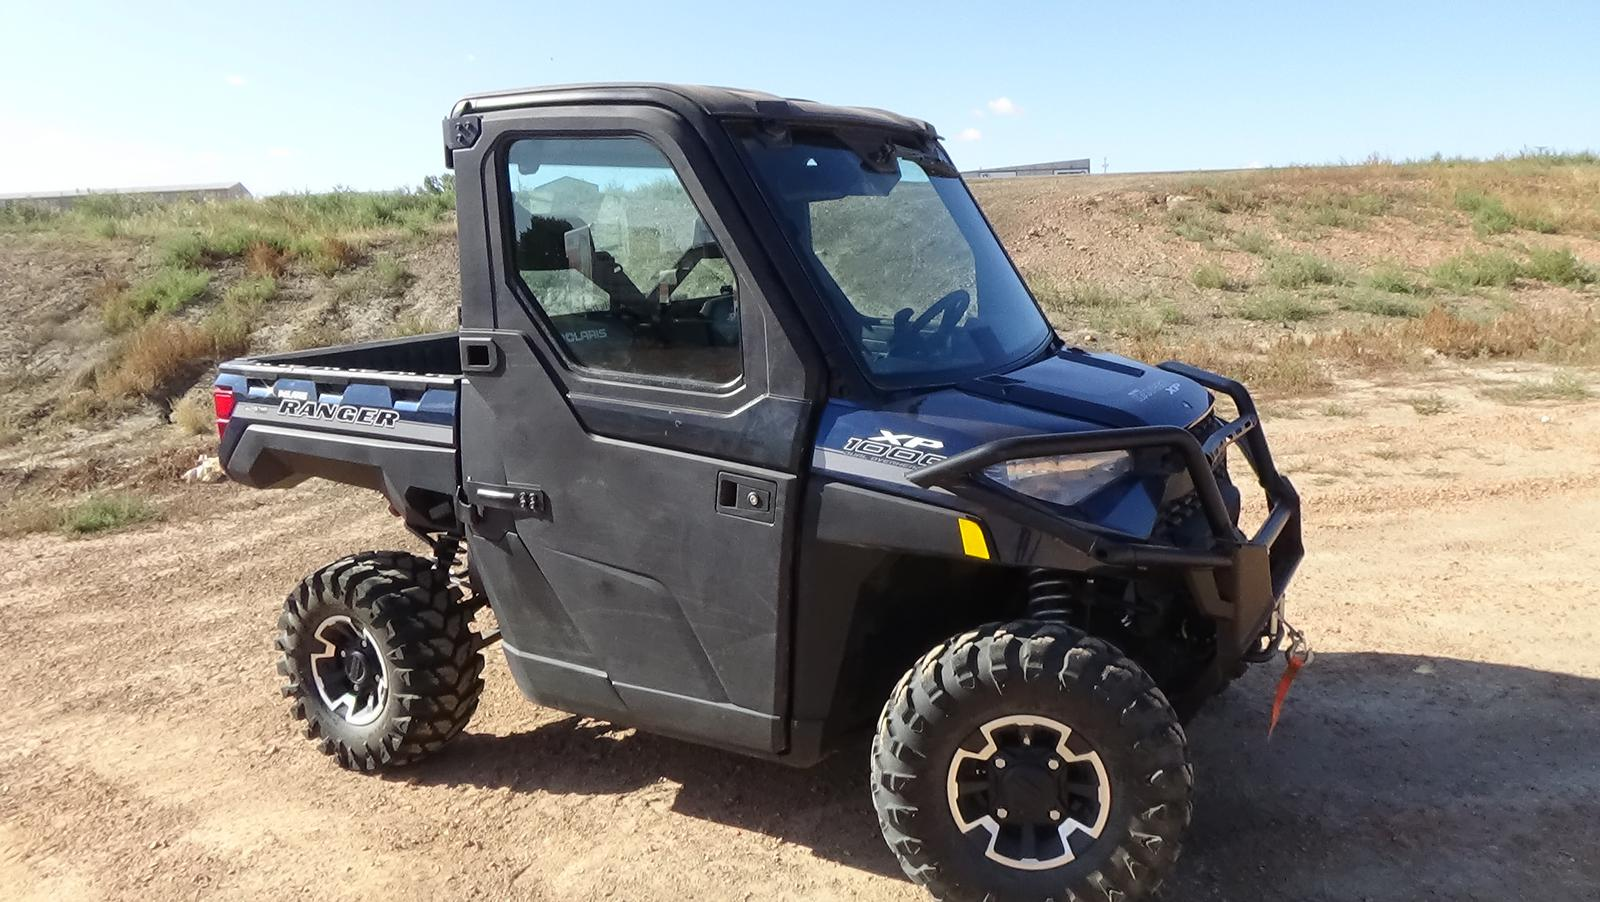 2019 polaris industries ranger xp 1000 eps - steel blue